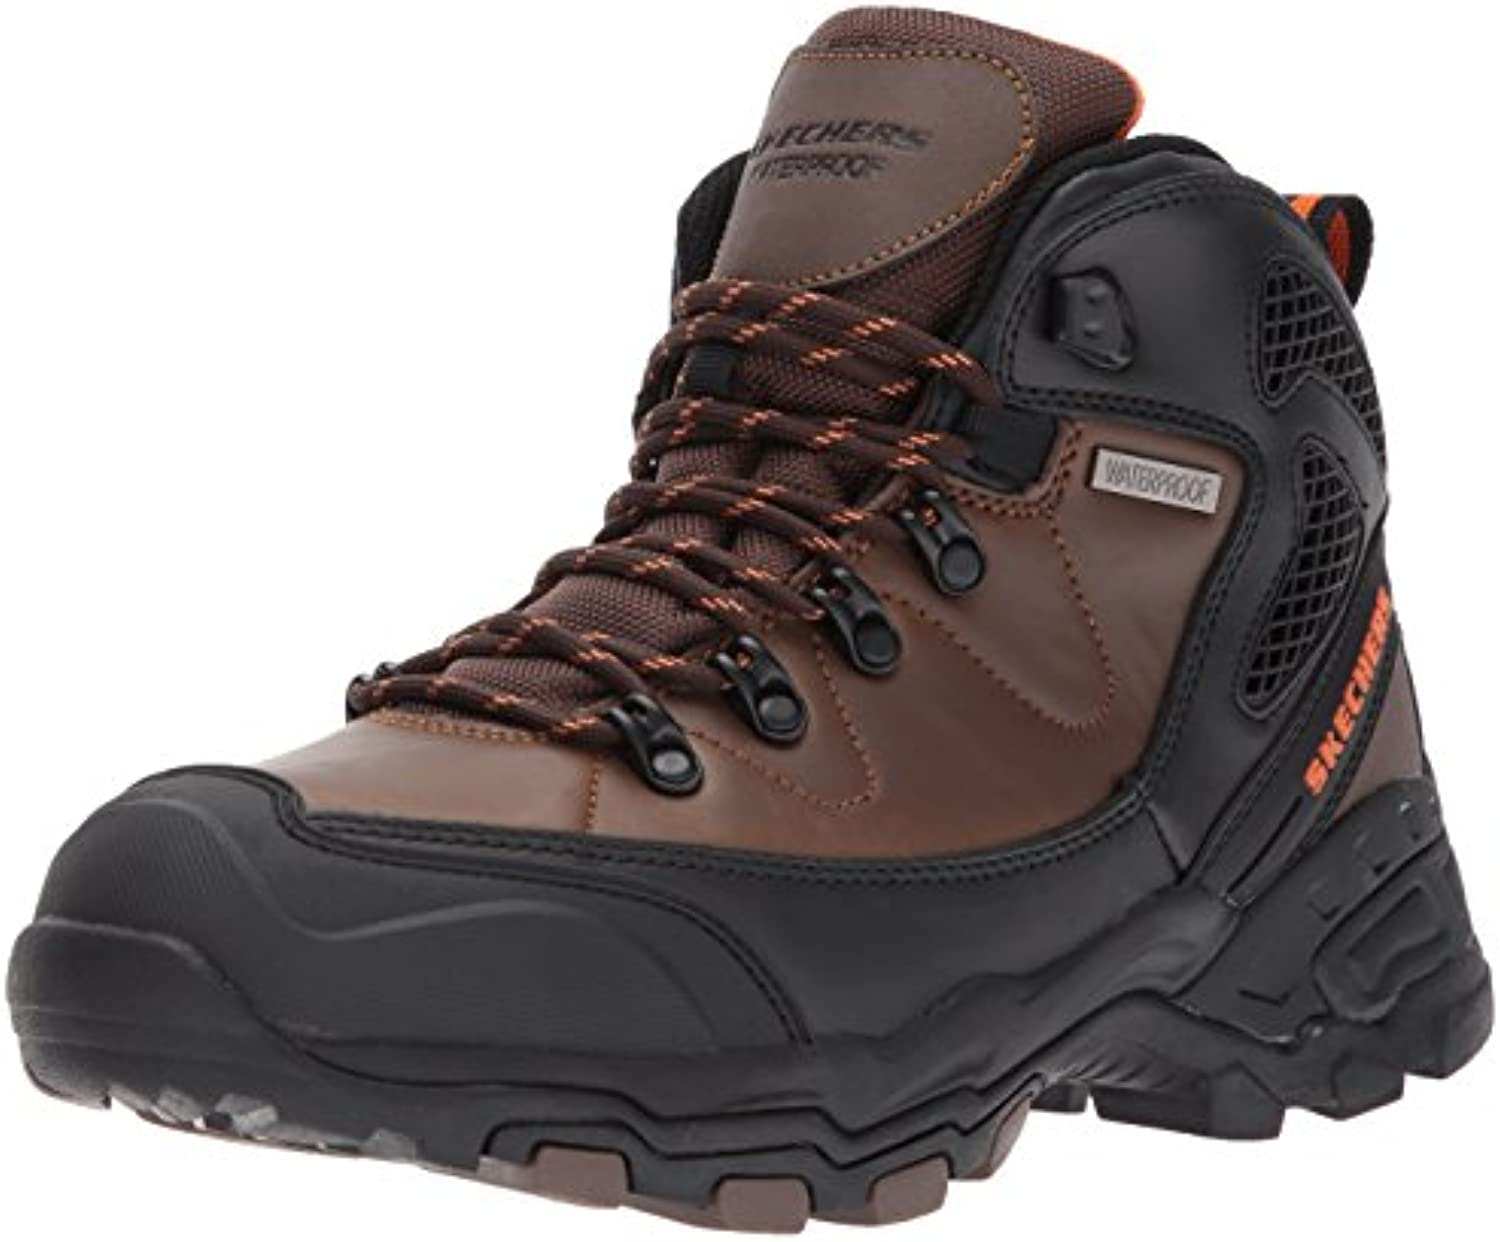 Skechers Pedley Aster Men'S Outdoor Boots Waterproof Relaxed Fit